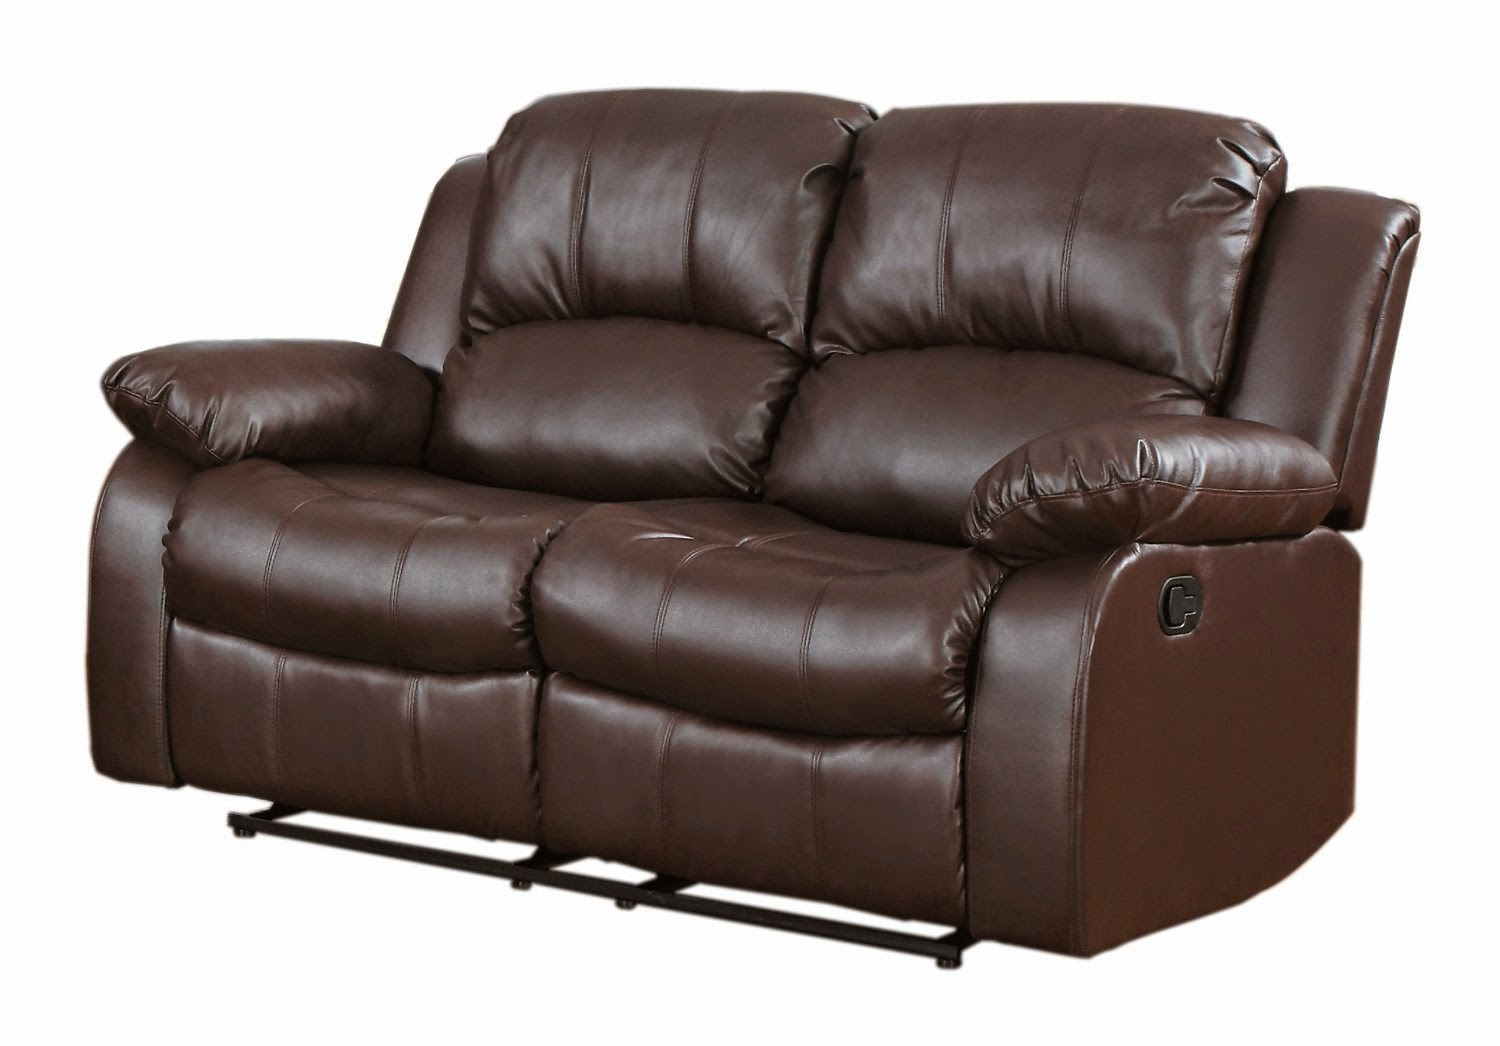 Loveseat Couch Brown Leather Couch Brown Leather Couch And Loveseat